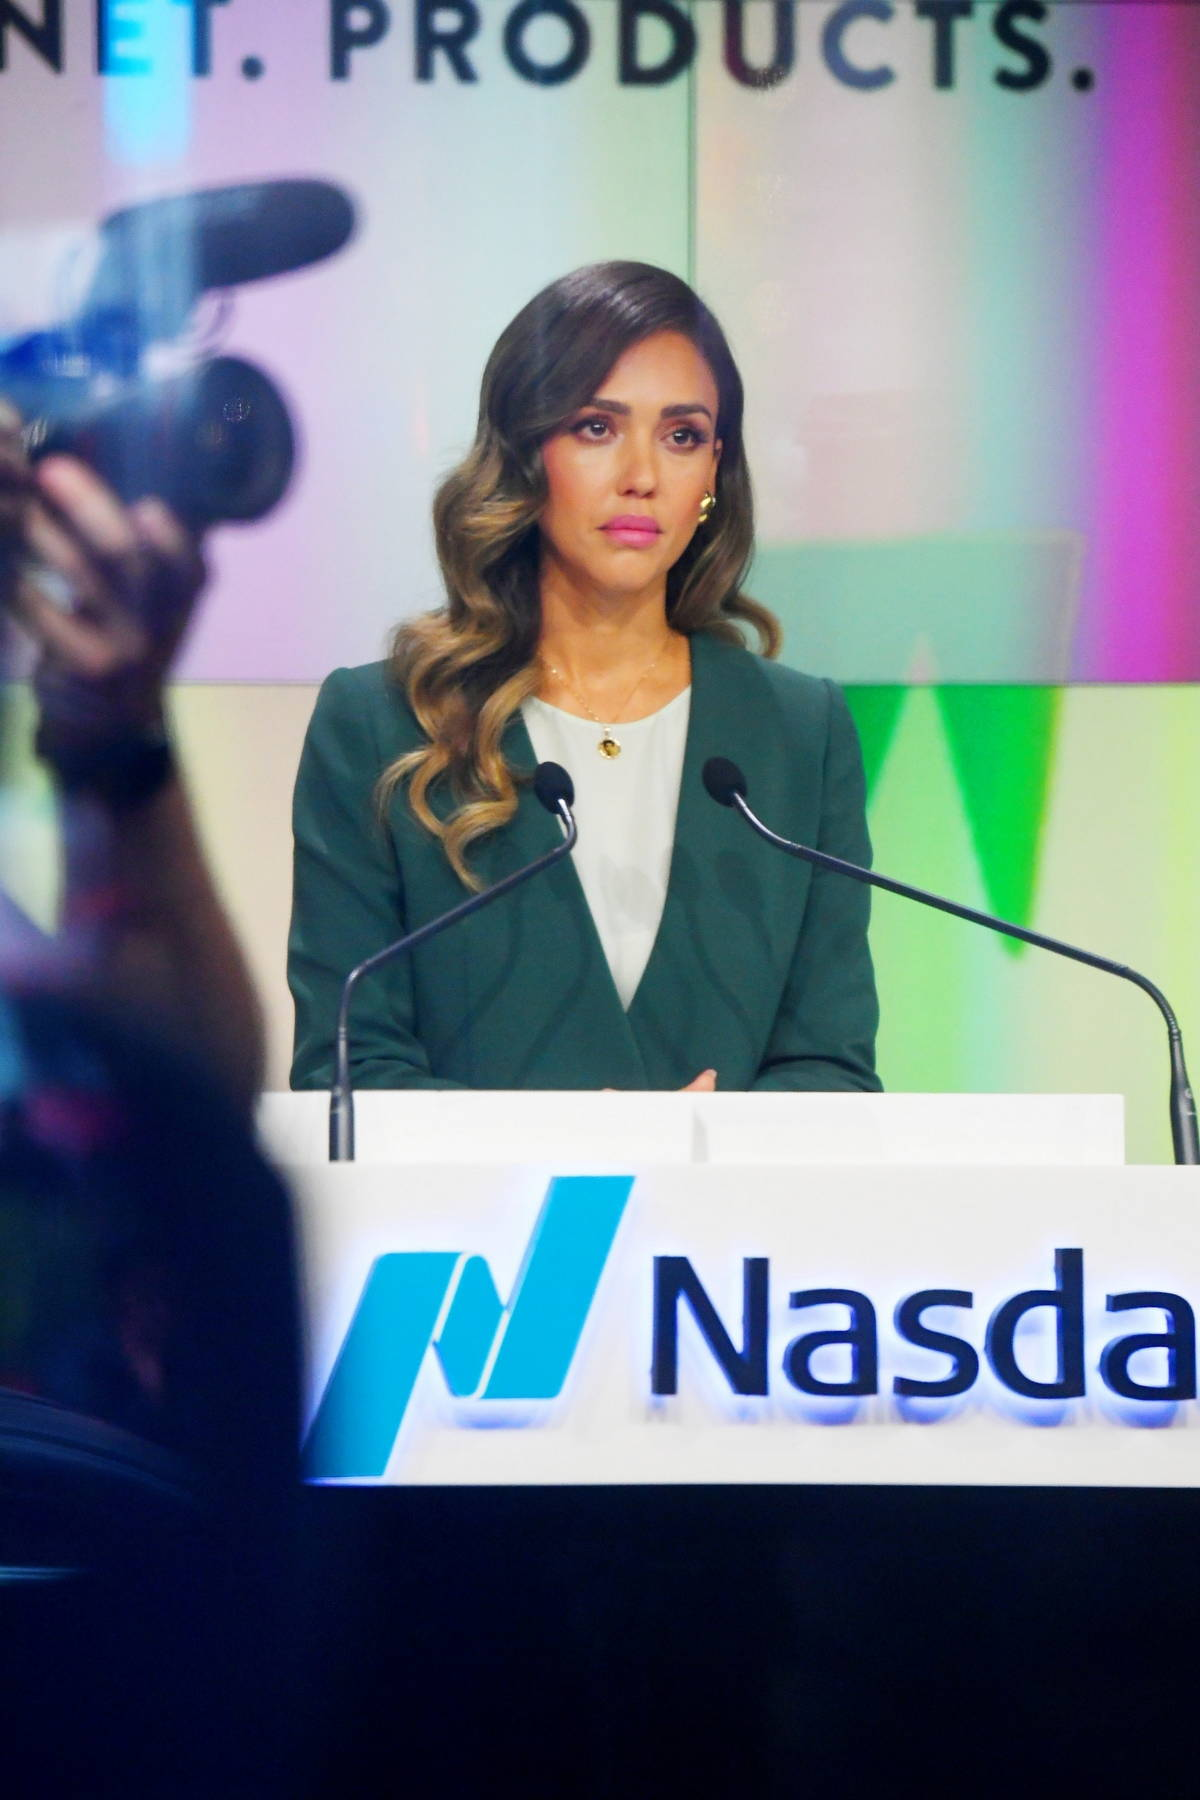 Jessica Alba rings the opening bell in celebration of Honest Company's IPO in New York City